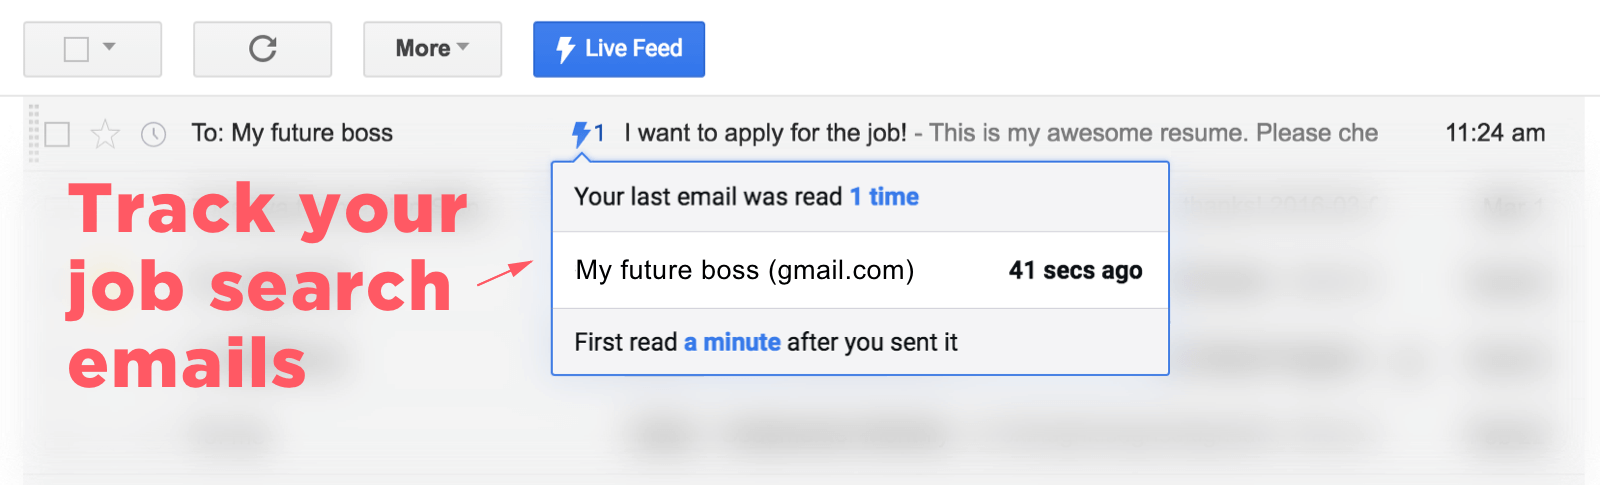 track your job search emails with mixax or streak